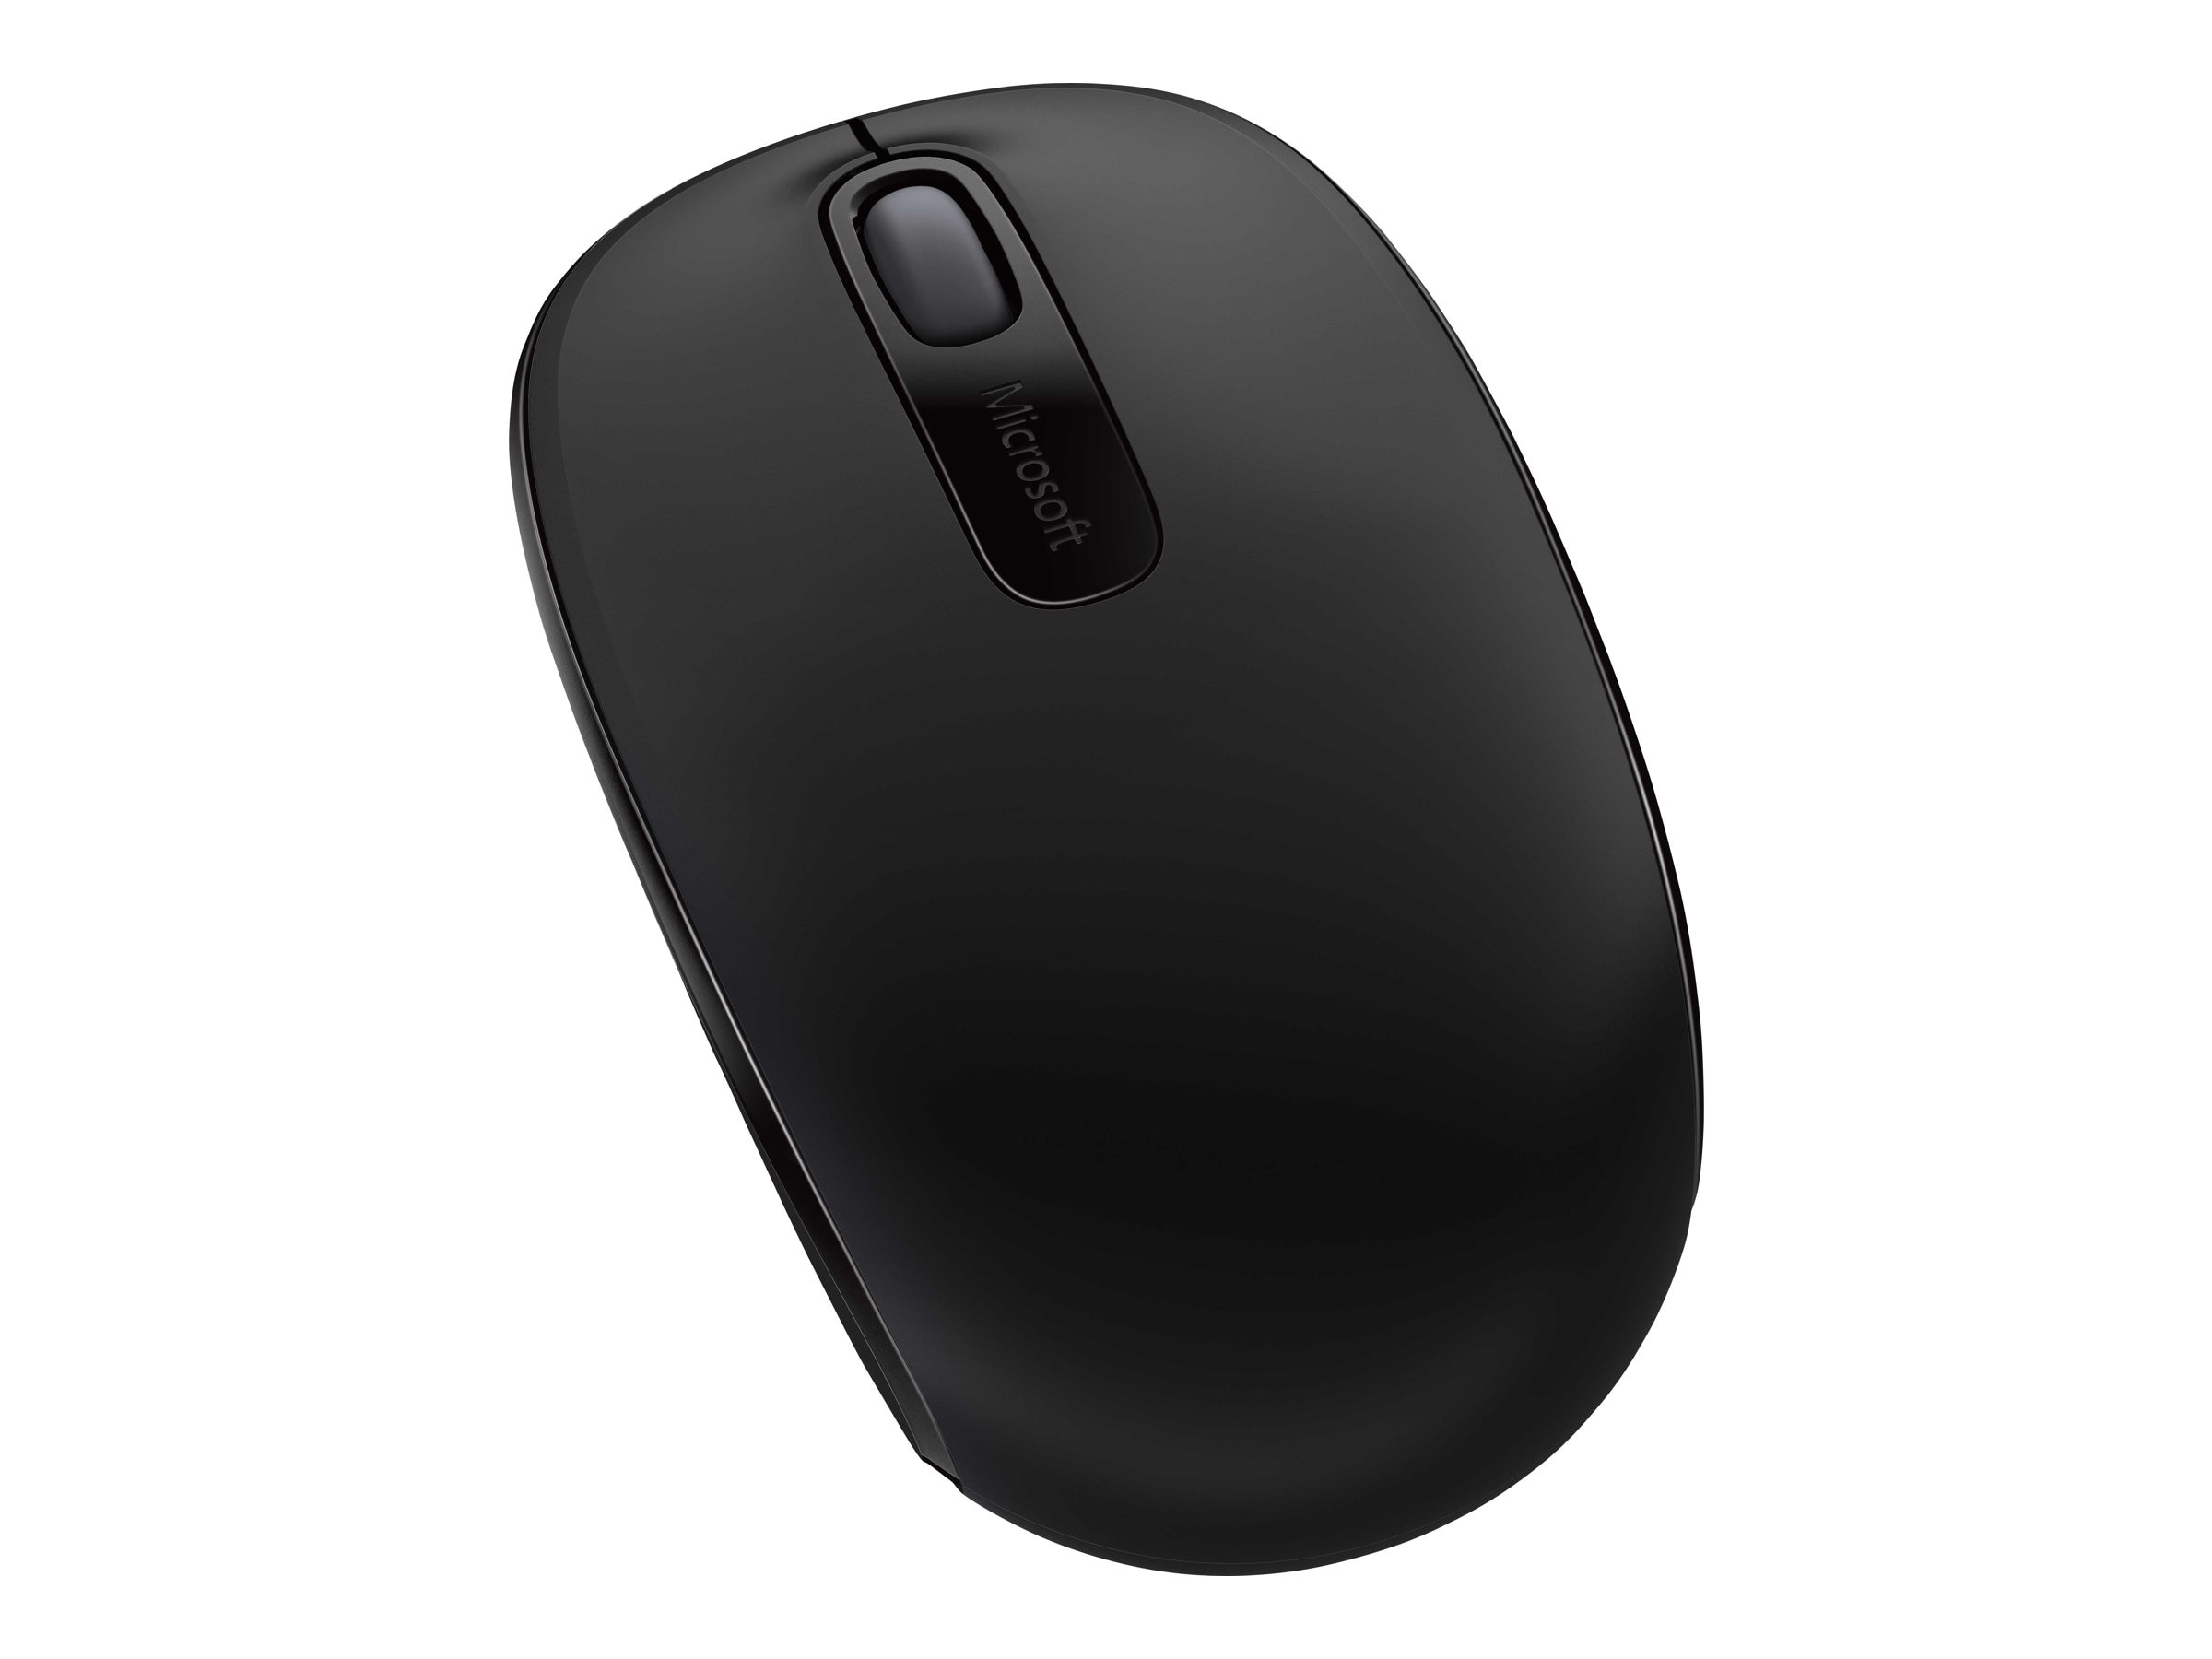 Microsoft Wireless Mobile Mouse 1850 for Business, Black